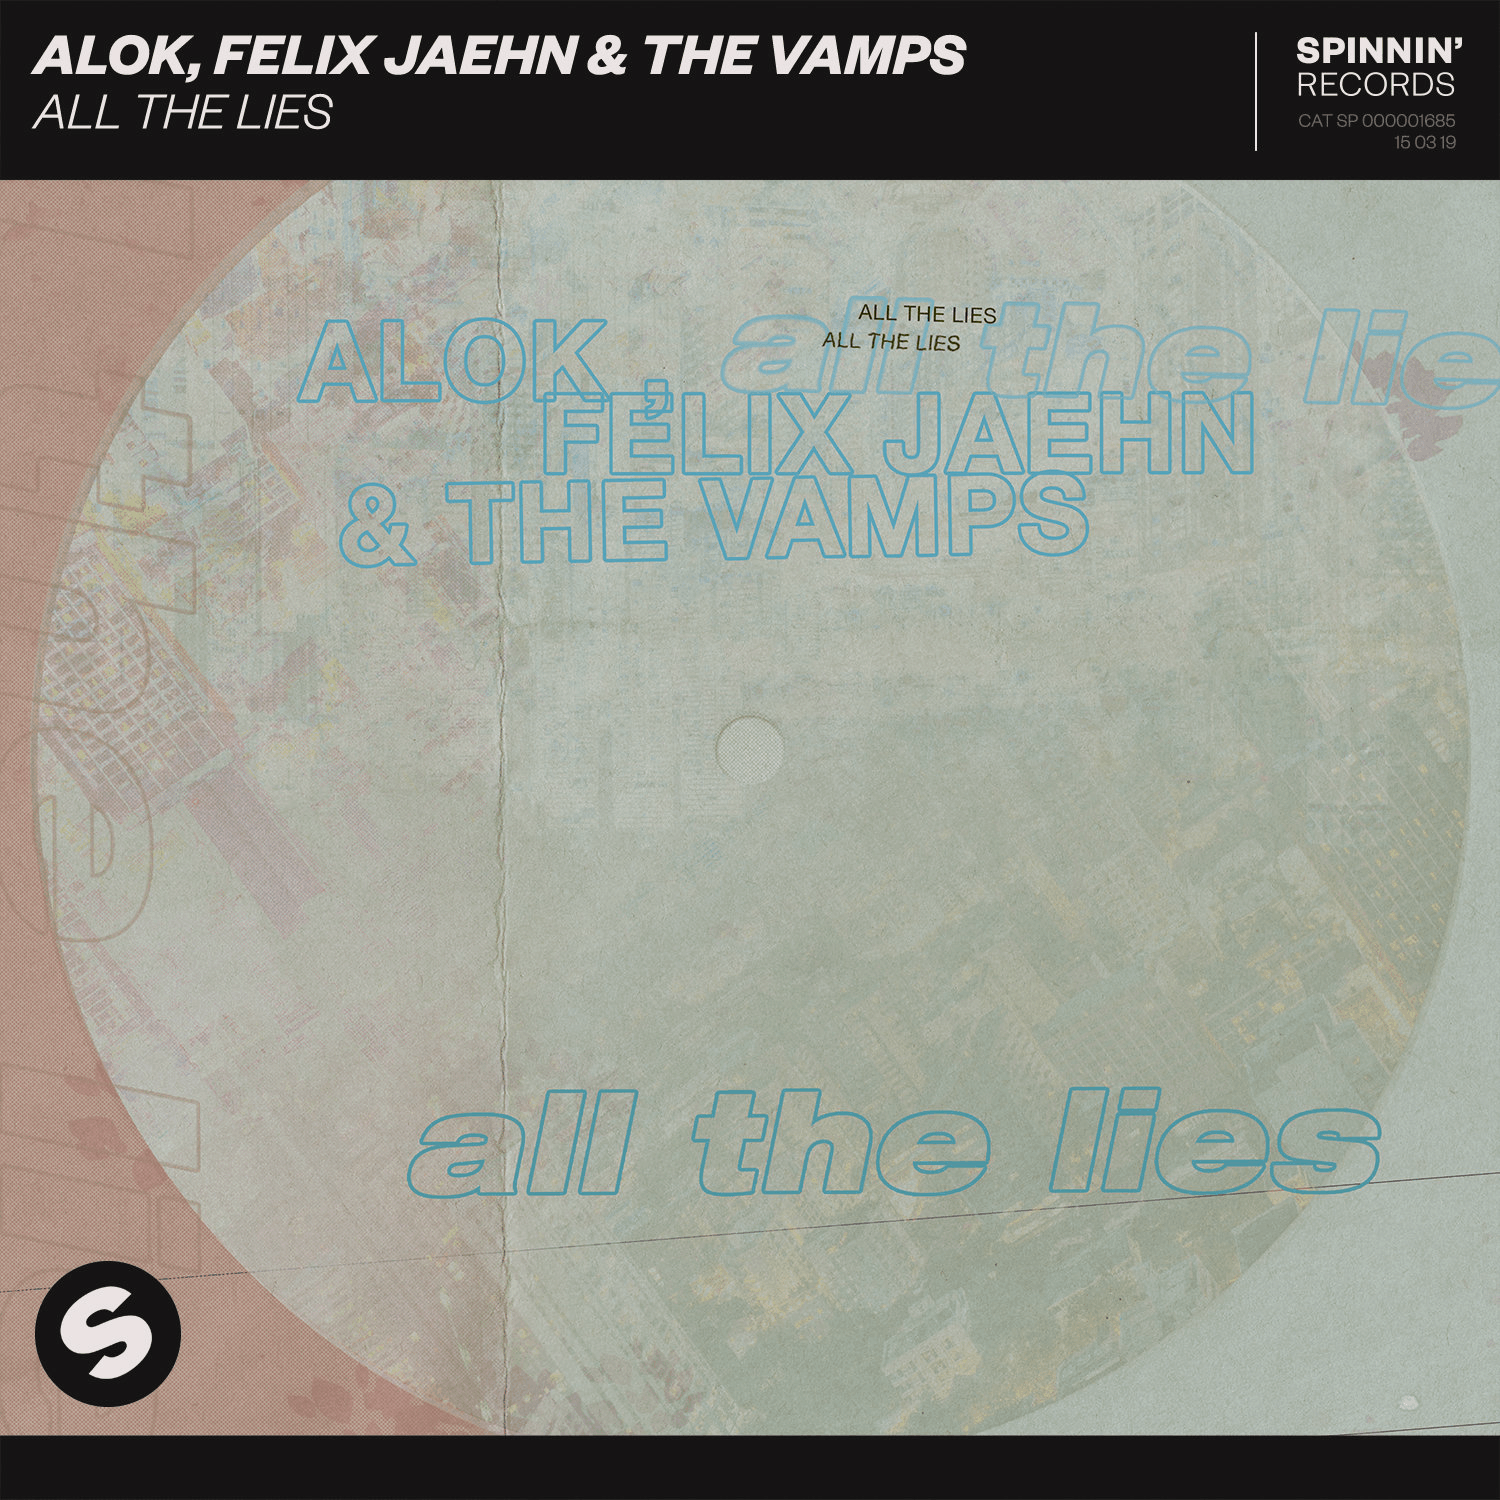 Alok, Felix Jaehn & The Vamps 'All The Lies' via Spinnin' Records